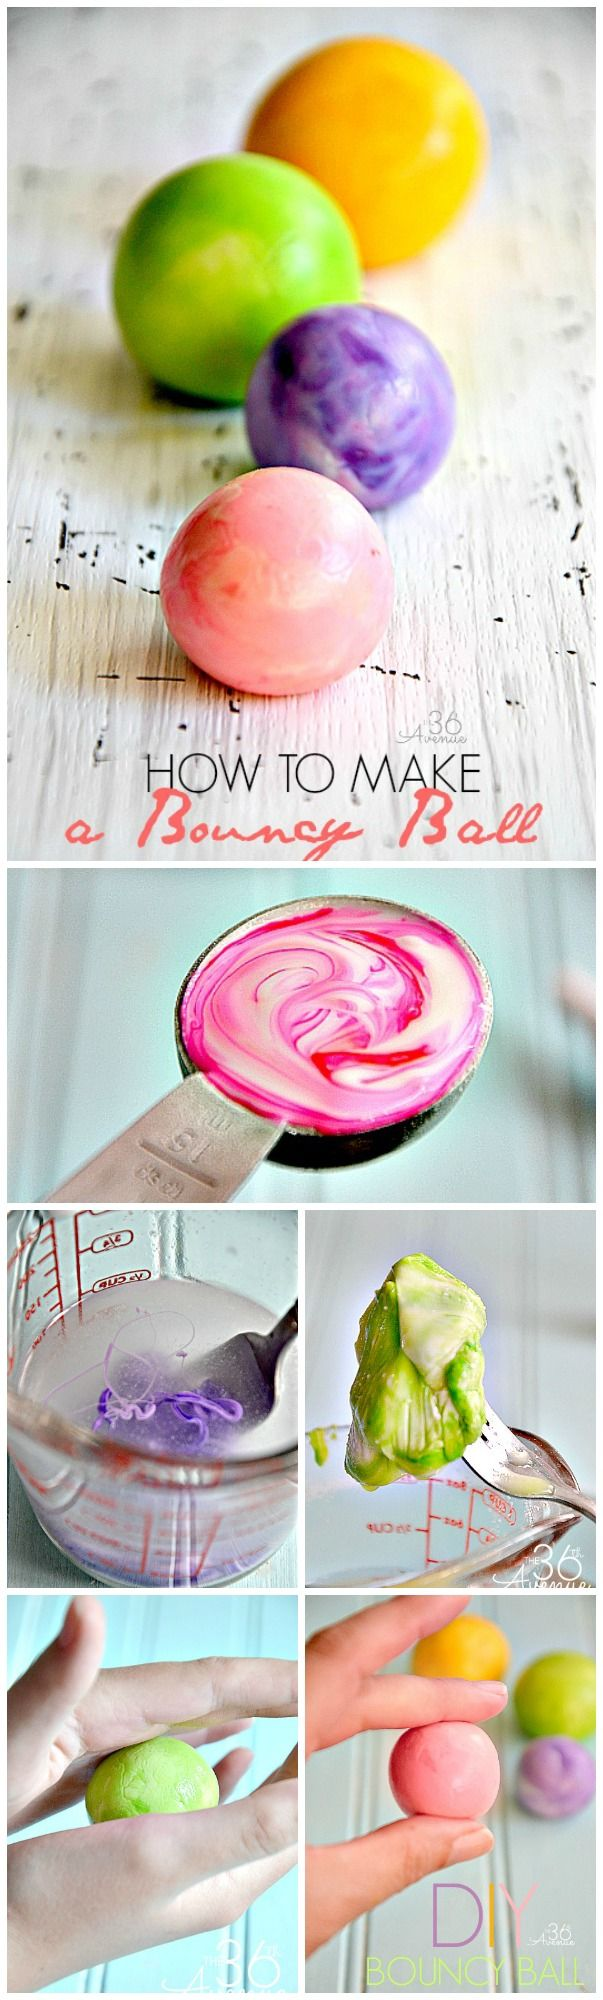 How to make a bouncy ball! Kid's favorite!: Crafts Ideas, Kids Stuff, Diy Crafts, Borax Bouncy Ball, Bouncy Balls, Diy Bouncy, Kids Crafts, Fun Crafts, Diy Projects